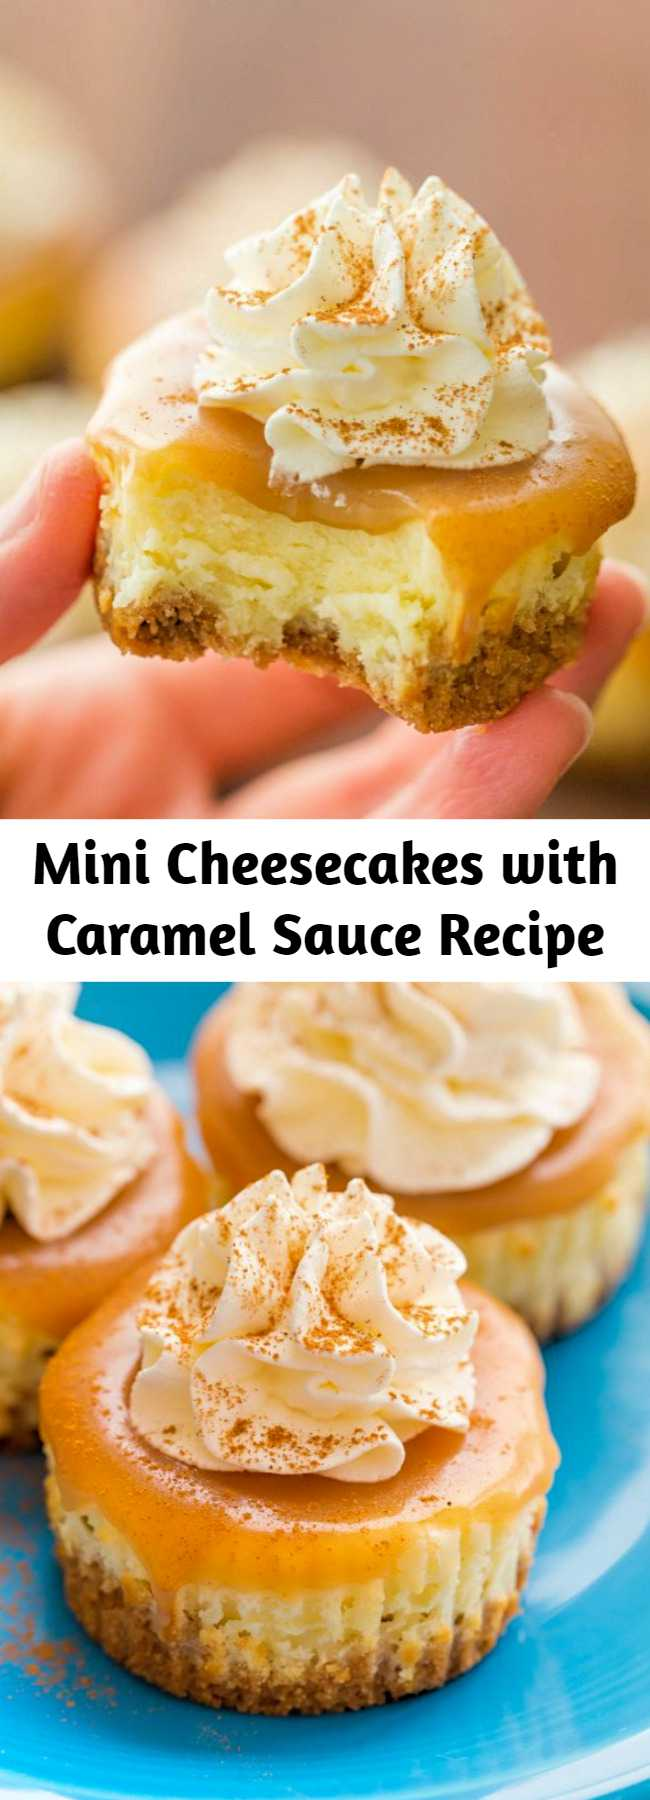 Mini Cheesecakes with Caramel Sauce Recipe